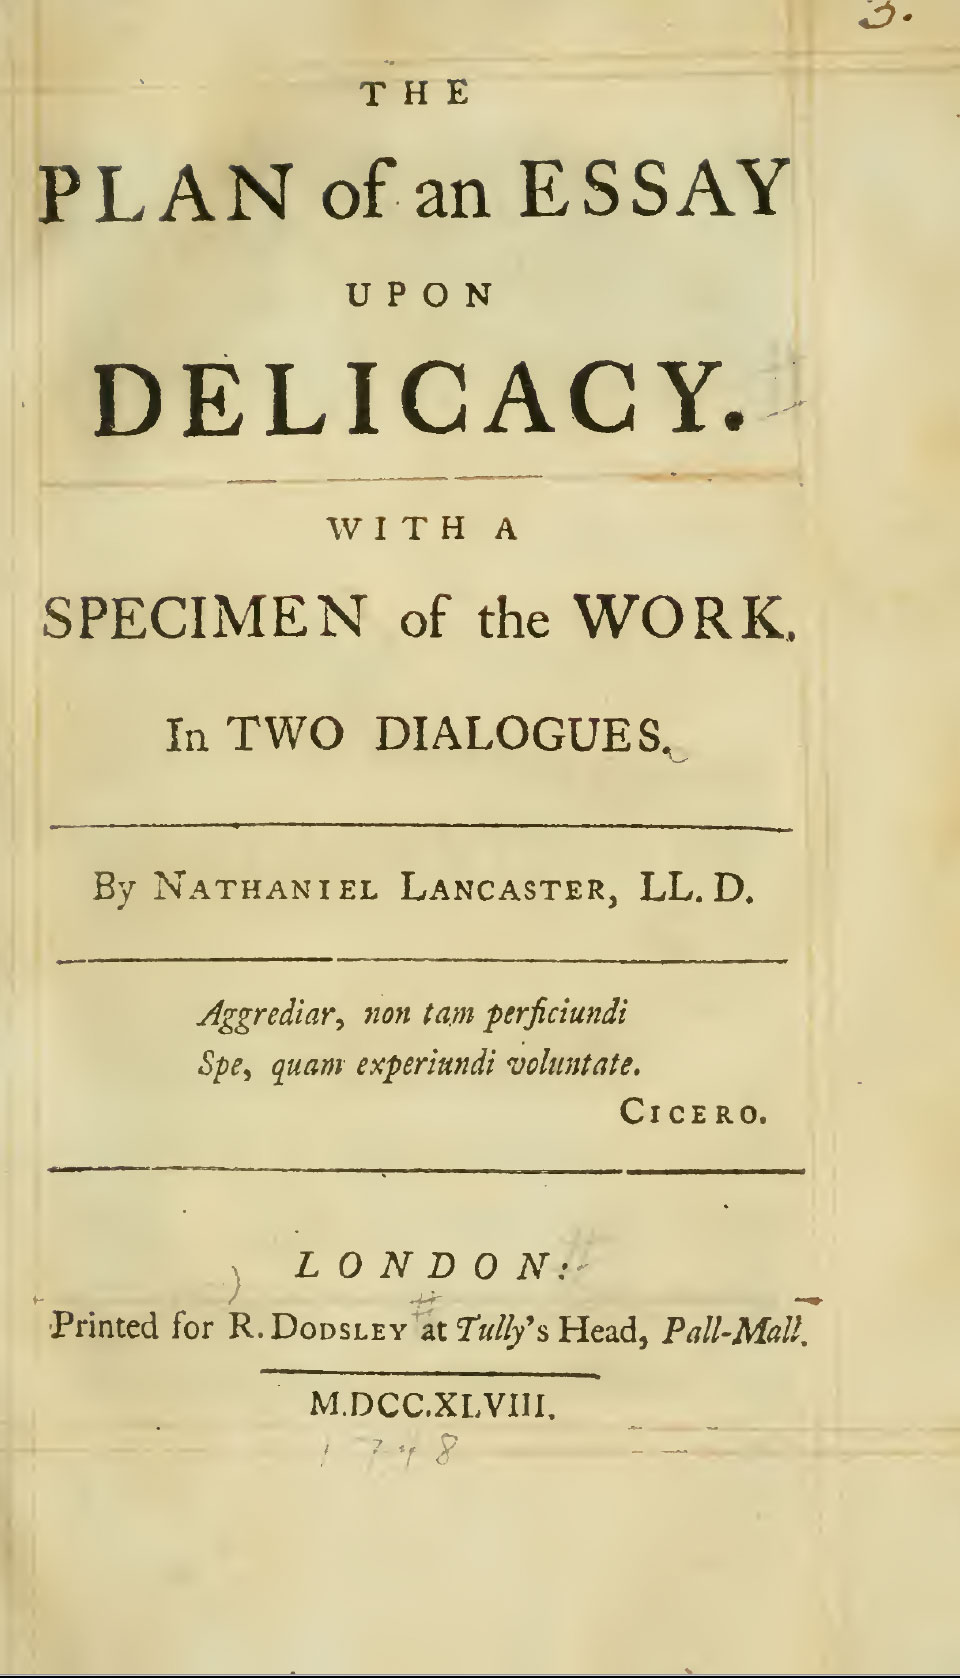 The Plan of an Essay Upon Delicacy, by Nathaniel Lancaster, 1748